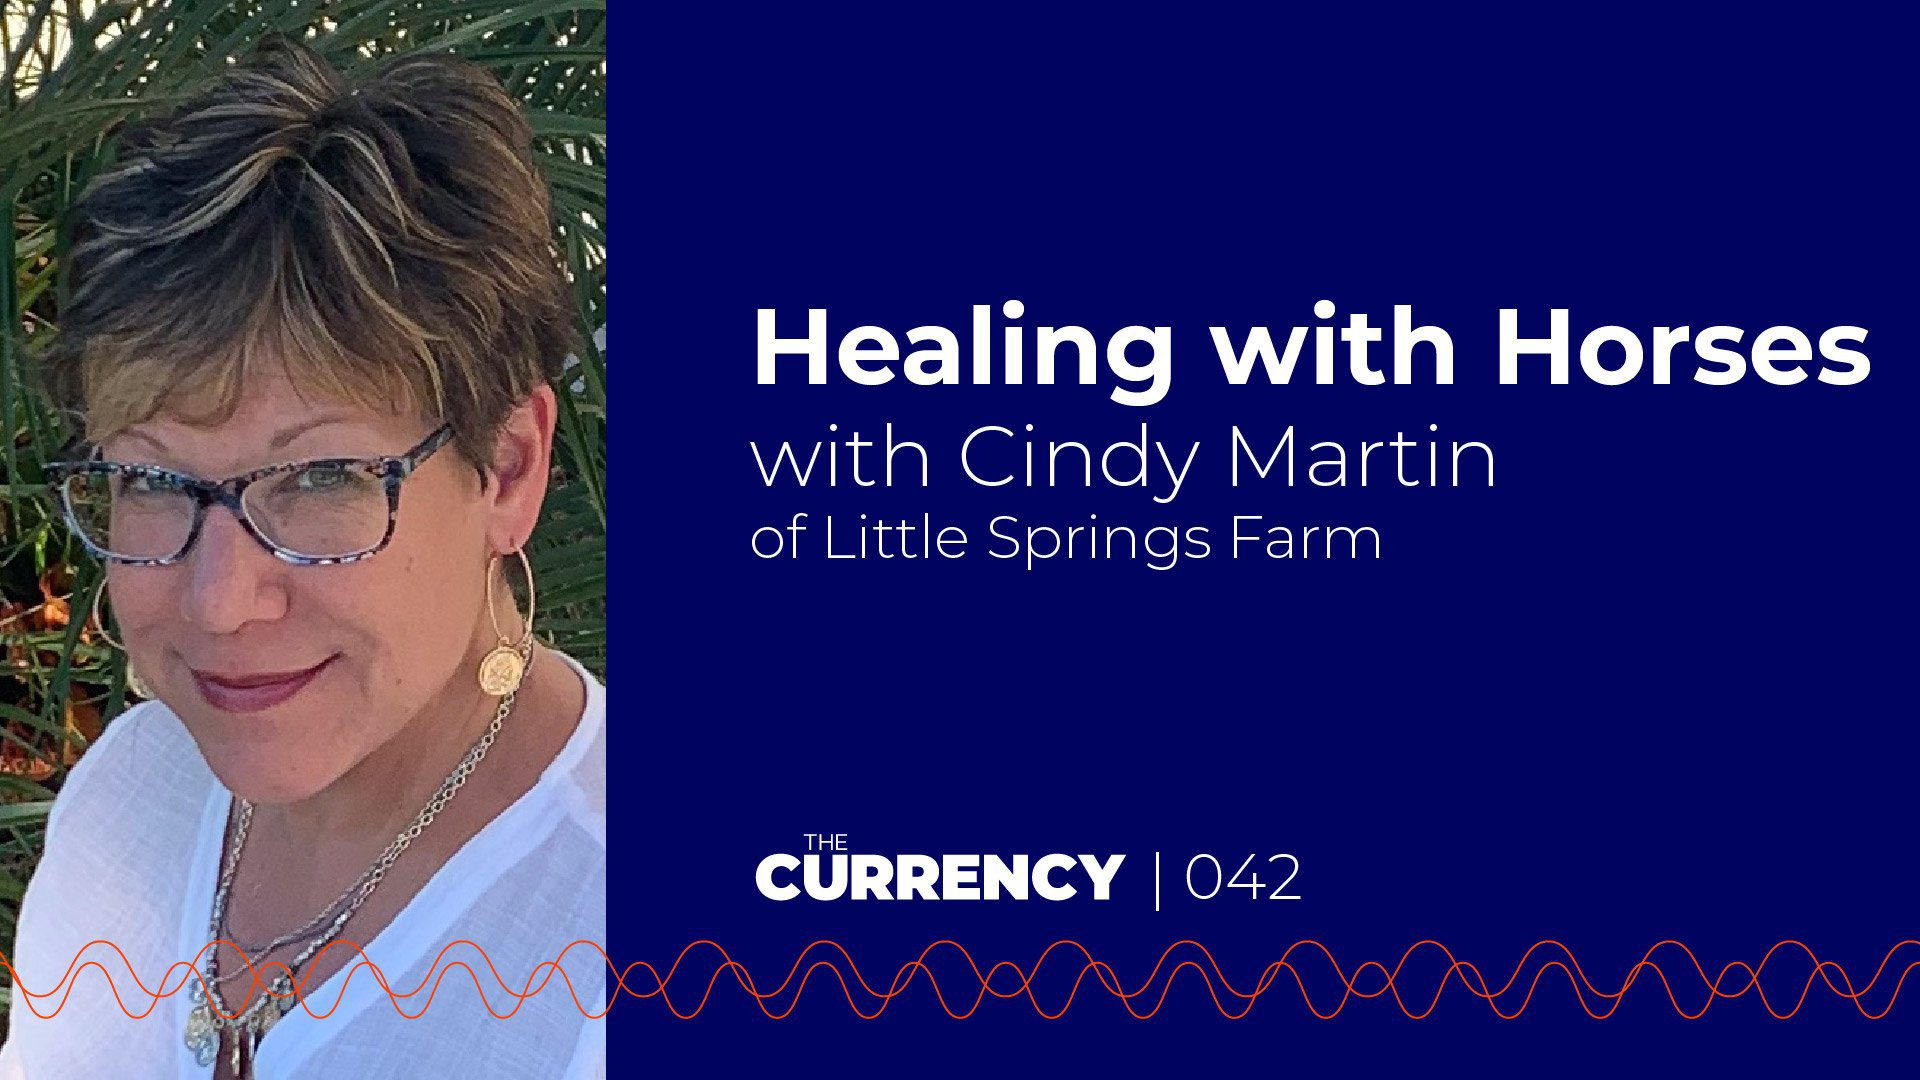 The Currency: [042] Healing with Horses with Cindy Martin